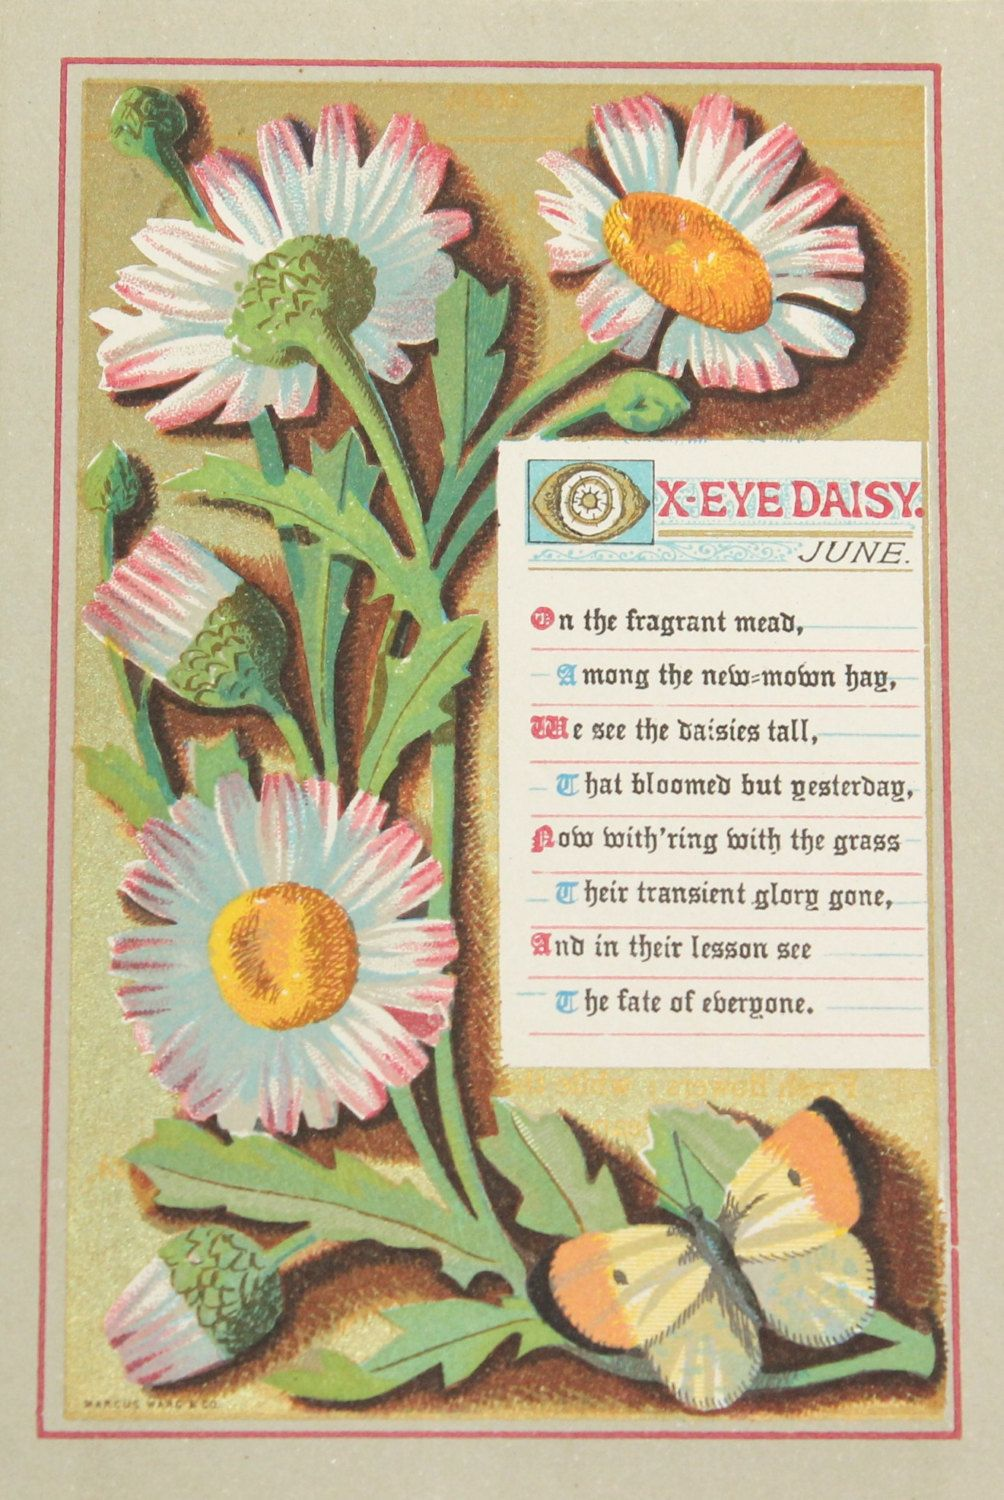 1873 genuine antique ox eye daisy june plate vintage original 1873 genuine antique ox eye daisy june plate vintage original victorian print seasons months wild flowers botanical botany by vintageprintageart on etsy izmirmasajfo Images